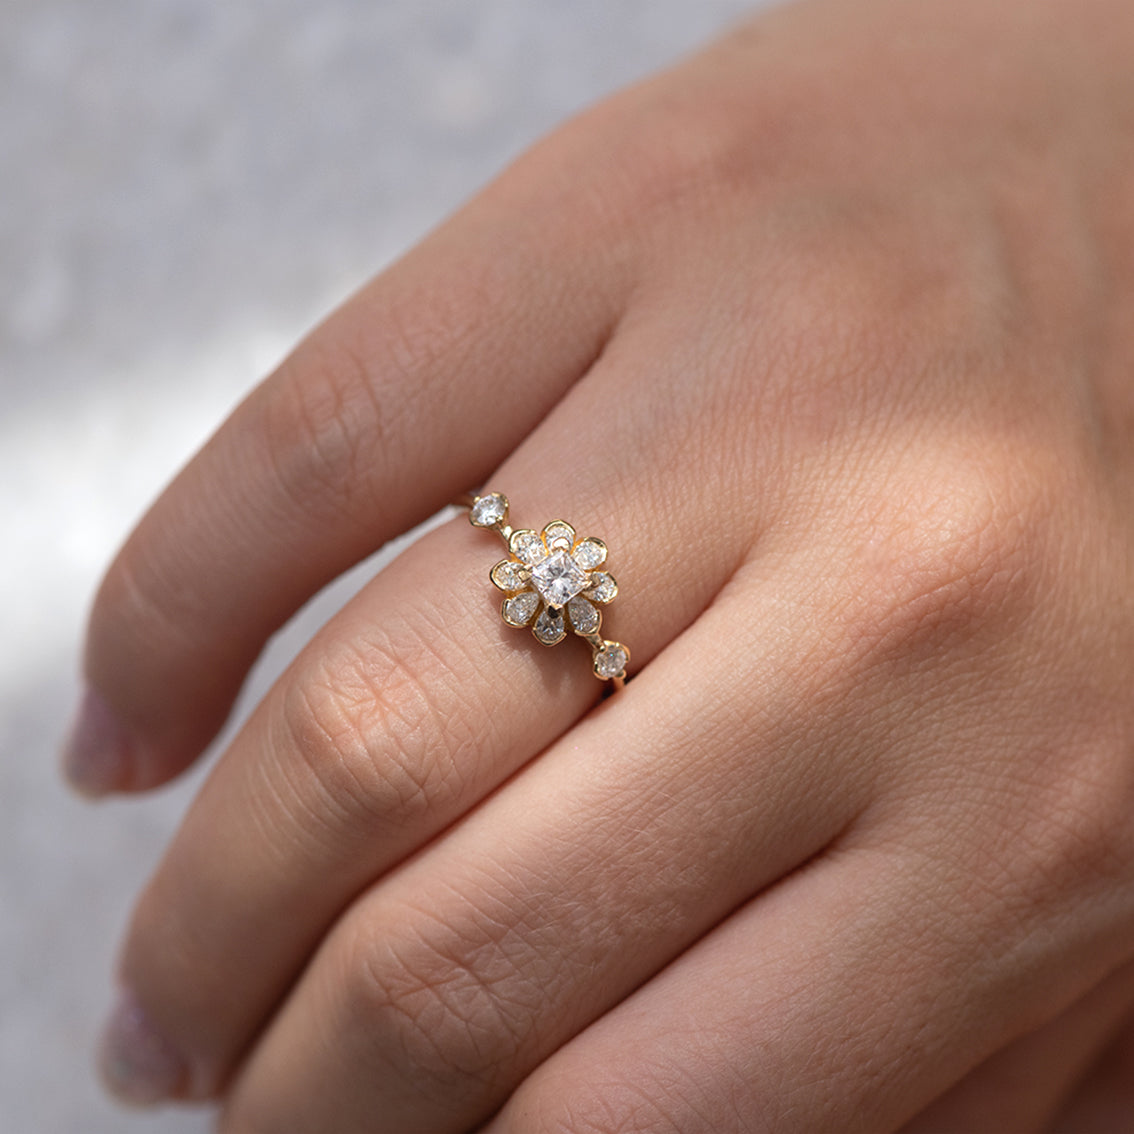 Flower Diamond Engagement Ring on hand